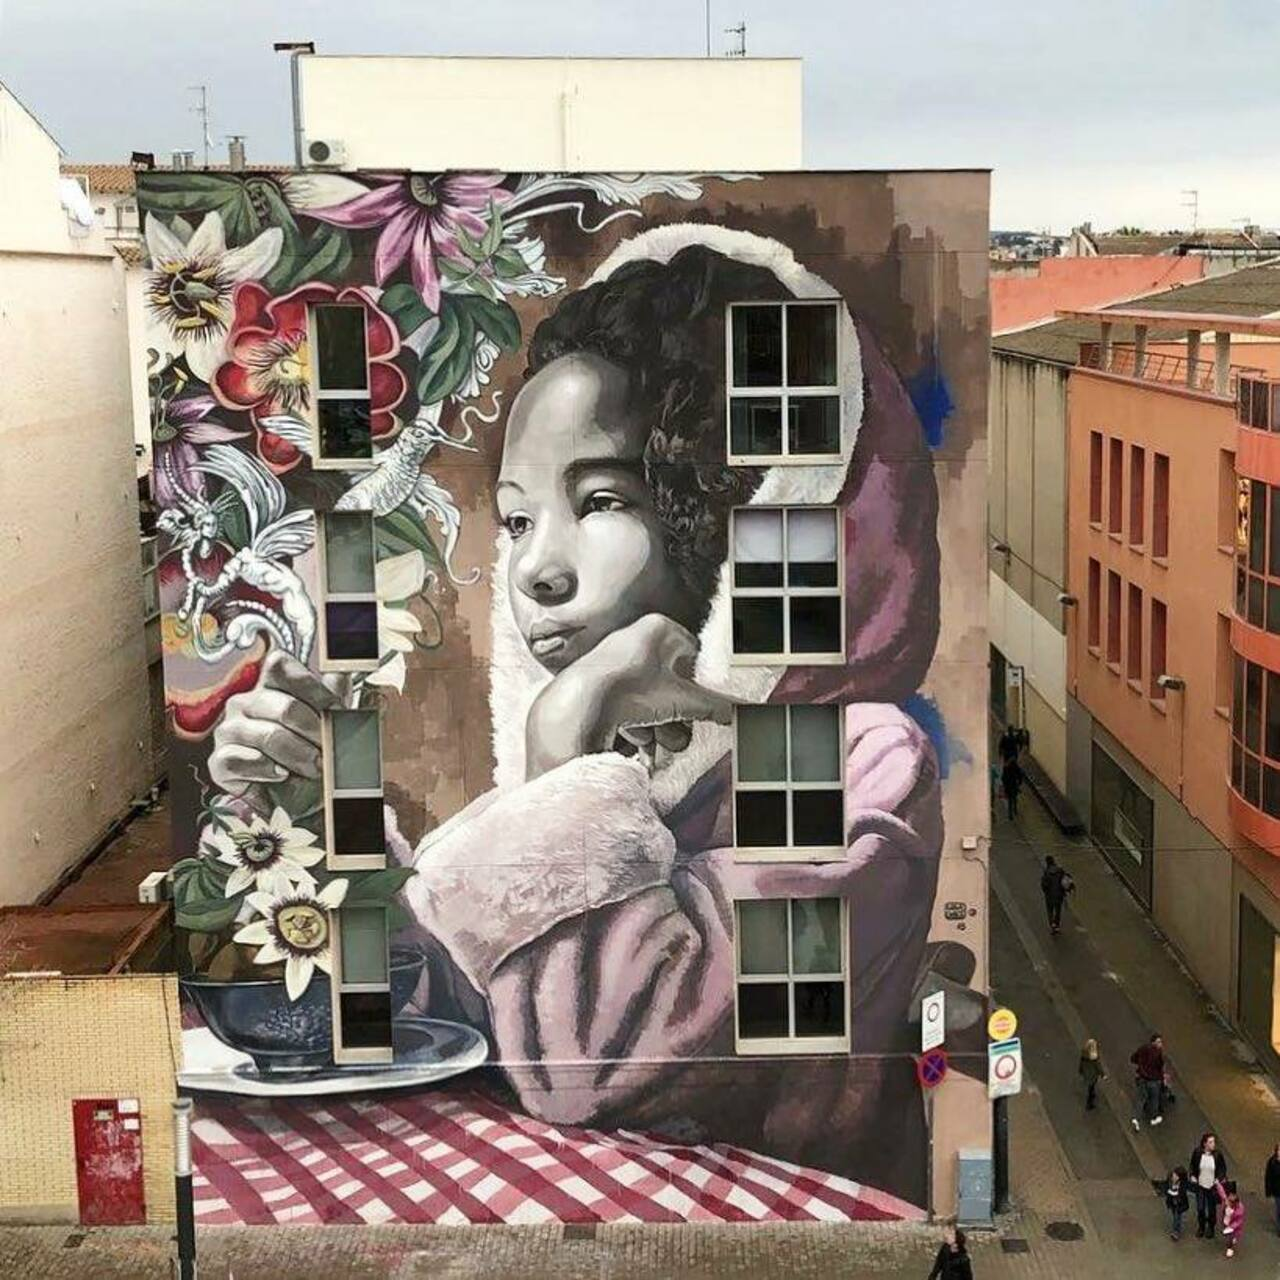 ... like beauty... and flowers. Amazing piece by Lula Goce in Barcelona #StreetArt #Art #Beauty #Flowers #Innocence #Graffiti #Mural #Barcelona https://t.co/mqfCWmX8iJ